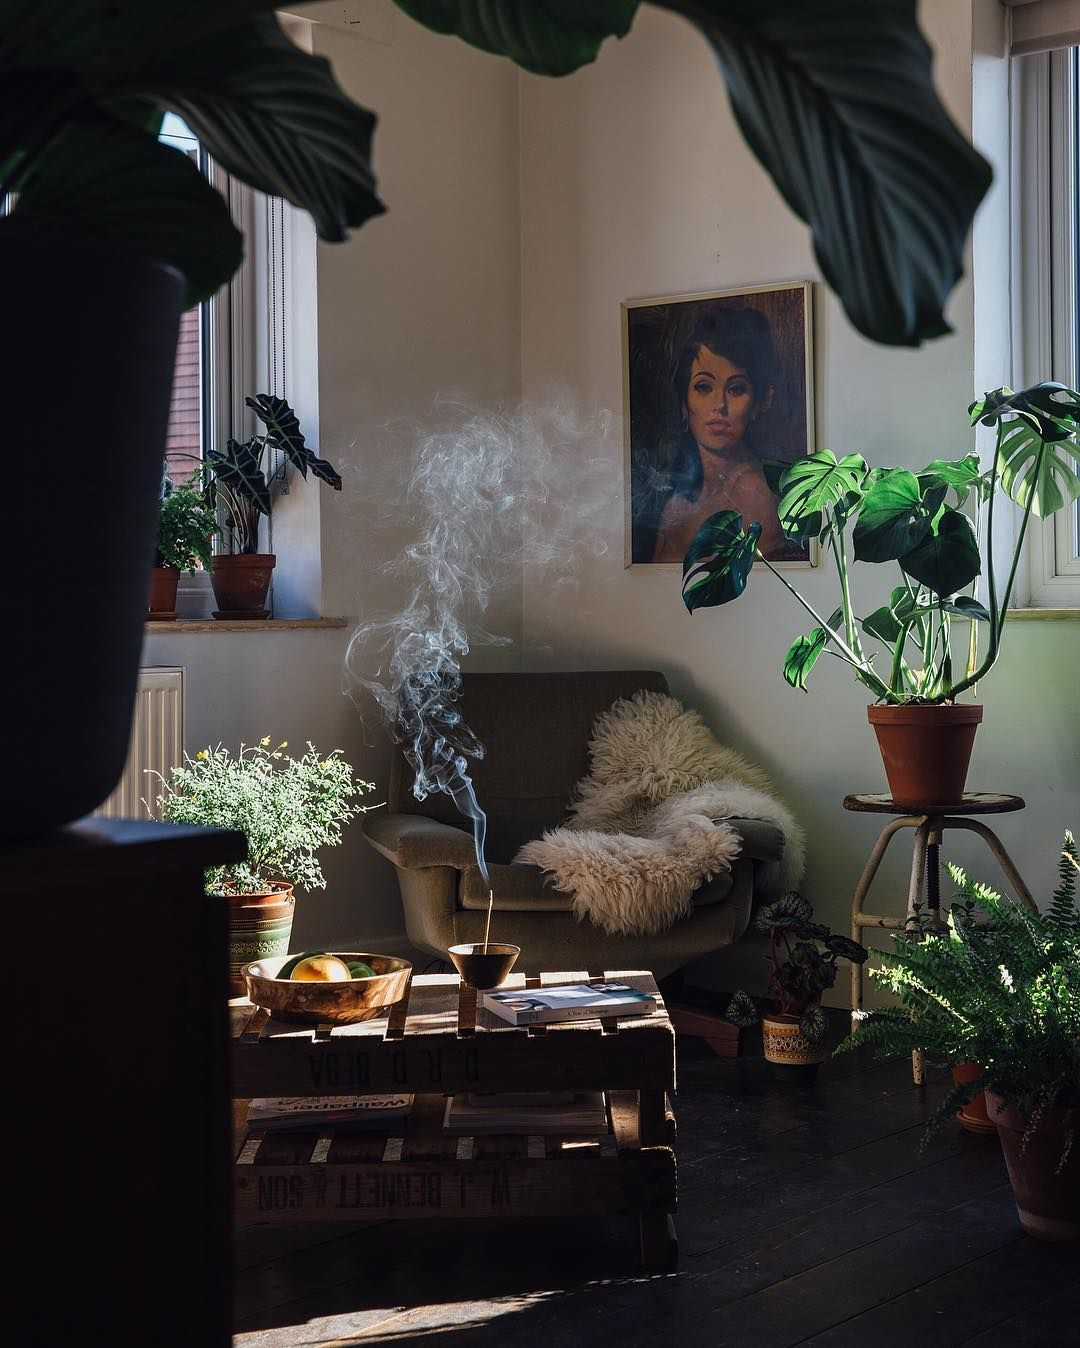 Window well decor  being surrounded by plants brings a positive and creative energy to